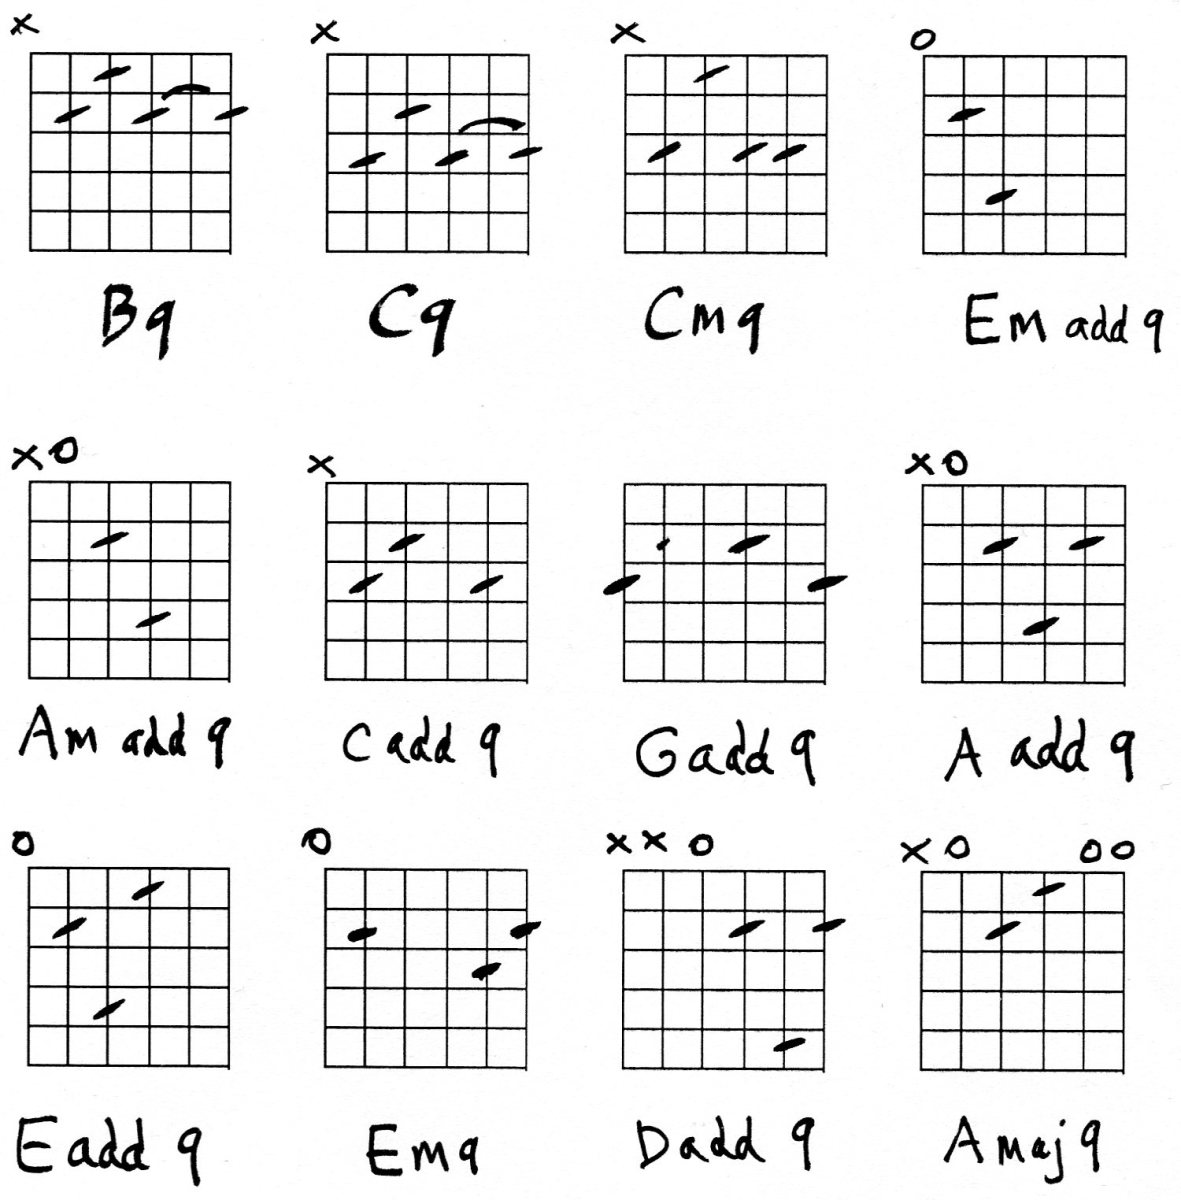 Guitar 12 string guitar chords : Guitar - 9th chords chart